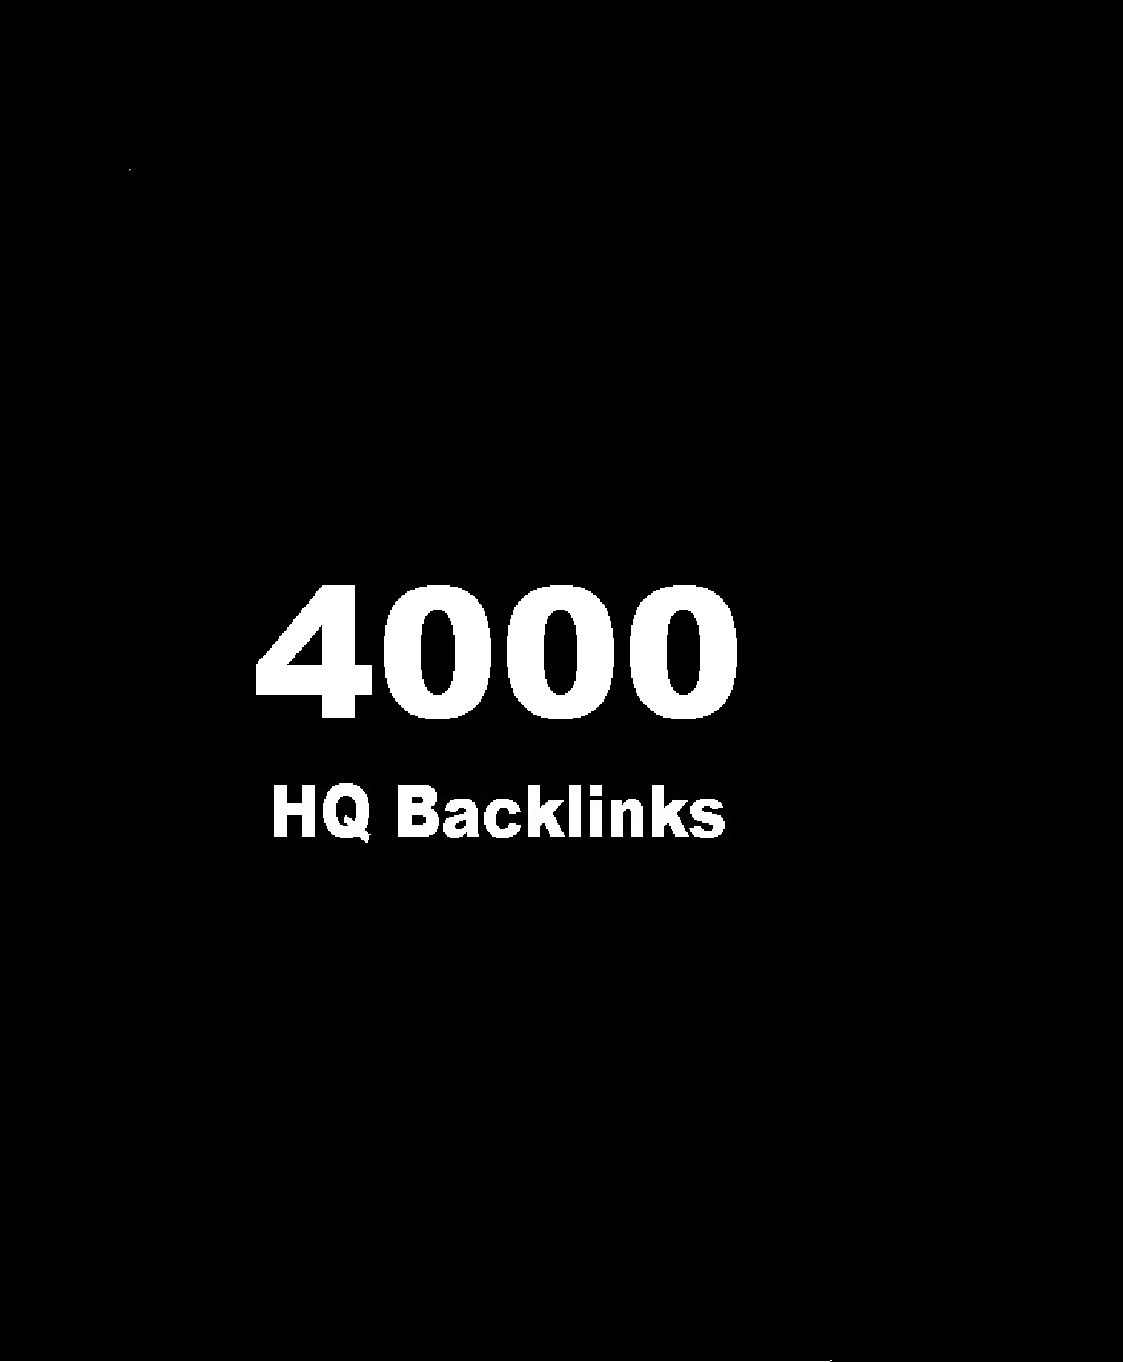 4000 Forum profiles posting backlinks High PR Backlinks and rank higher on Google.